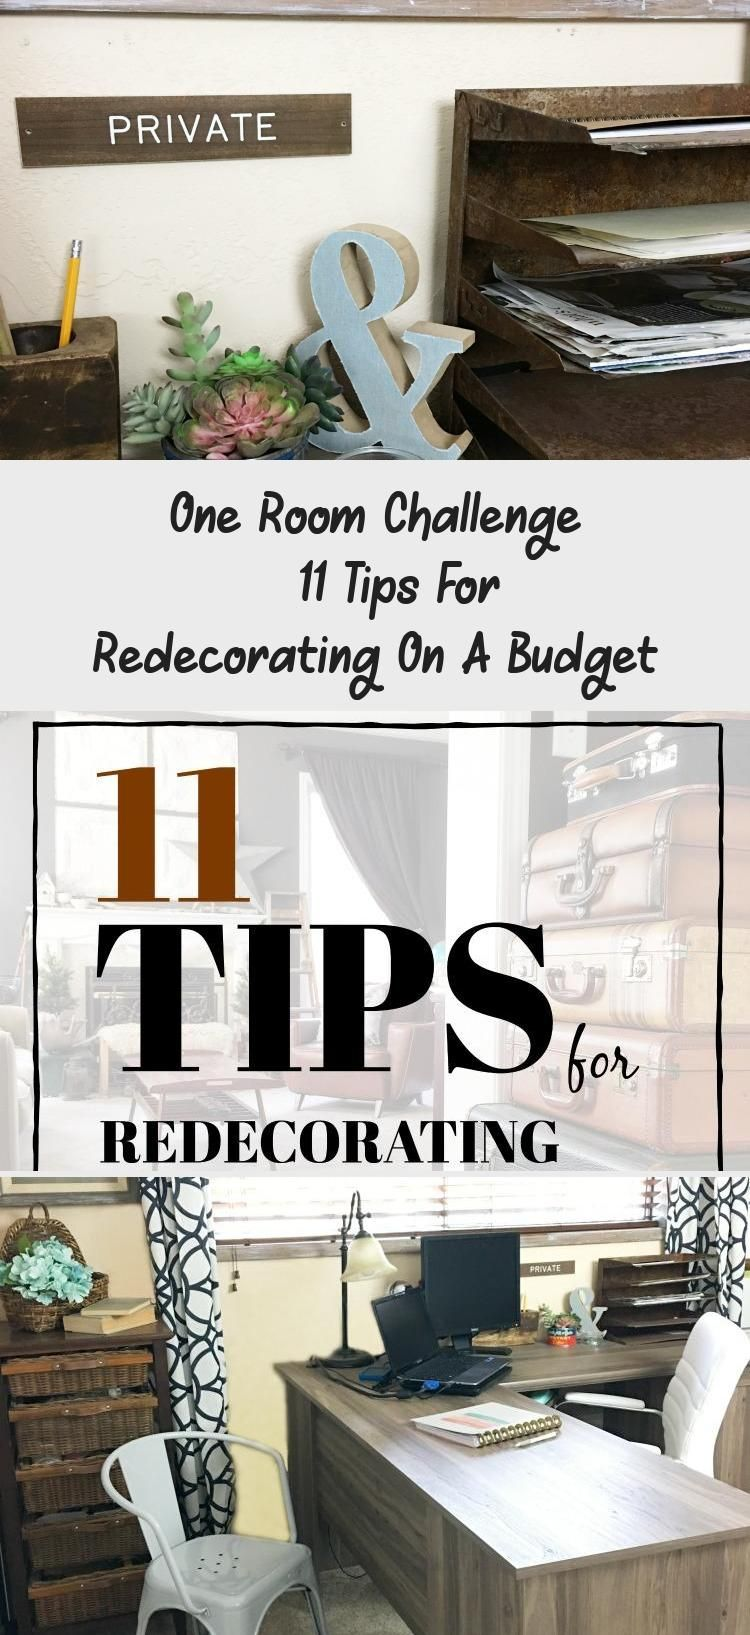 How to redecorate on a budget.  Here are some tips.  Find more on salvagesisterandmister.com #HomeDecorDIYVideosApartment #HomeDecorDIYVideosOnABudget #HomeDecorDIYVideosCheap #HomeDecorDIYVideosBedroom #HomeDecorDIYVideosIdeas